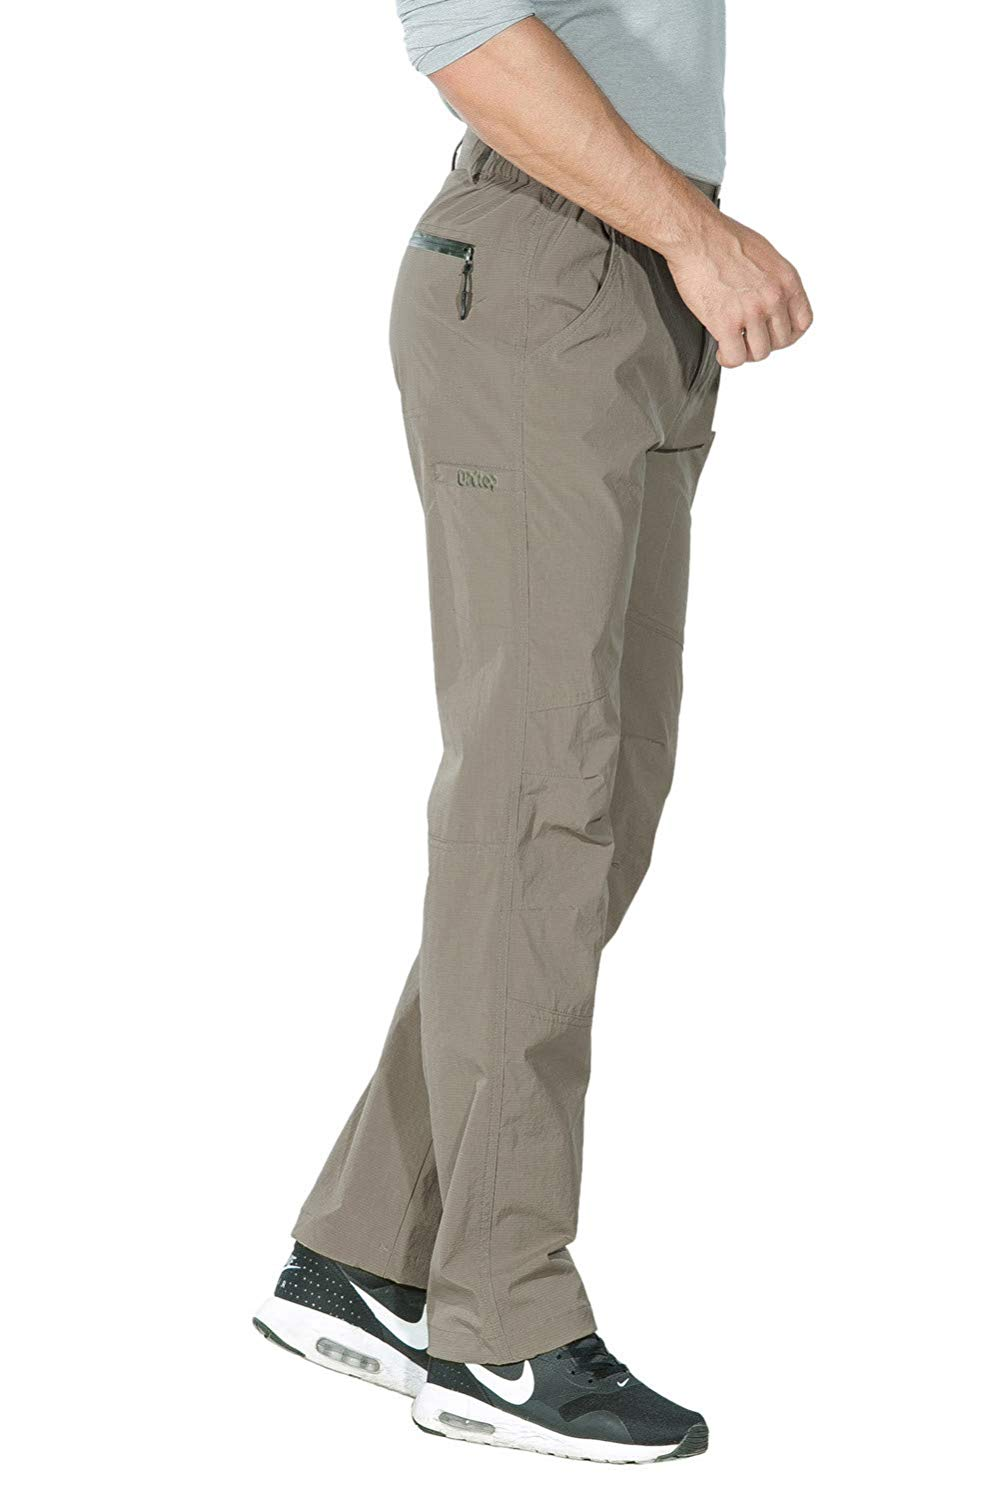 Unitop Men's Lightweight Hiking Cargo Pants side